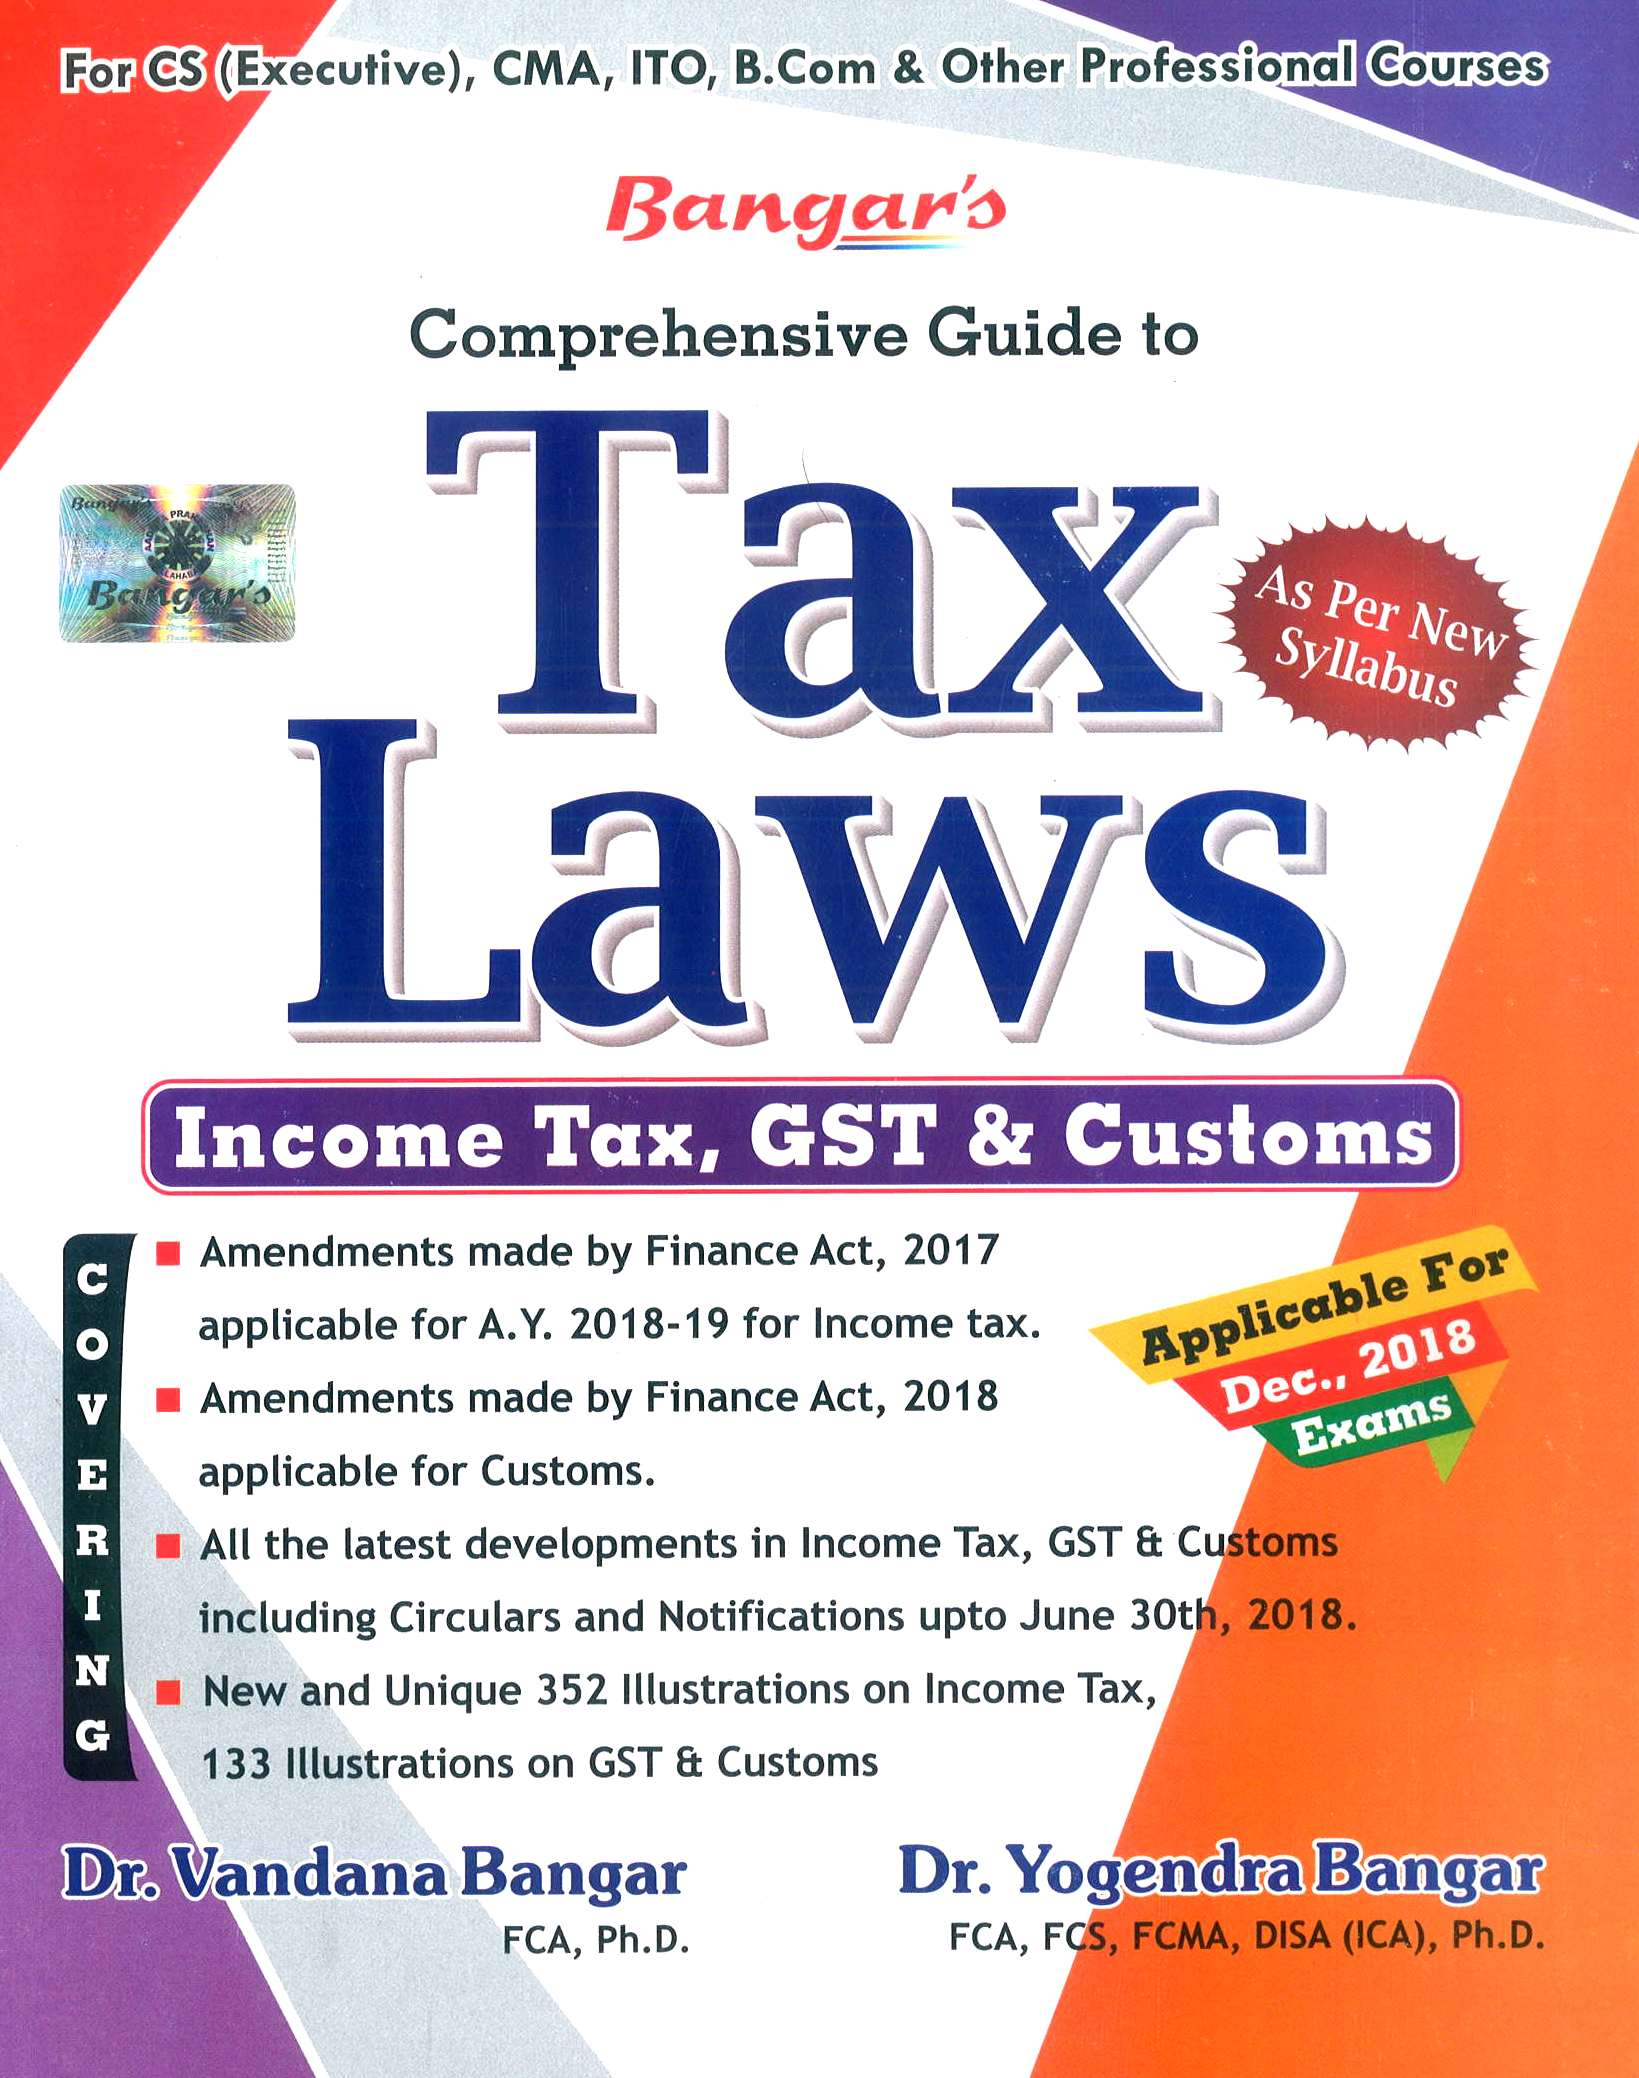 Aadhya Prakashan Comprehensive Guide To Tax Laws New Syllabus for CS Executive By Yogendra Bangar and Vandana Bangar Applicable for December 2018 Exam